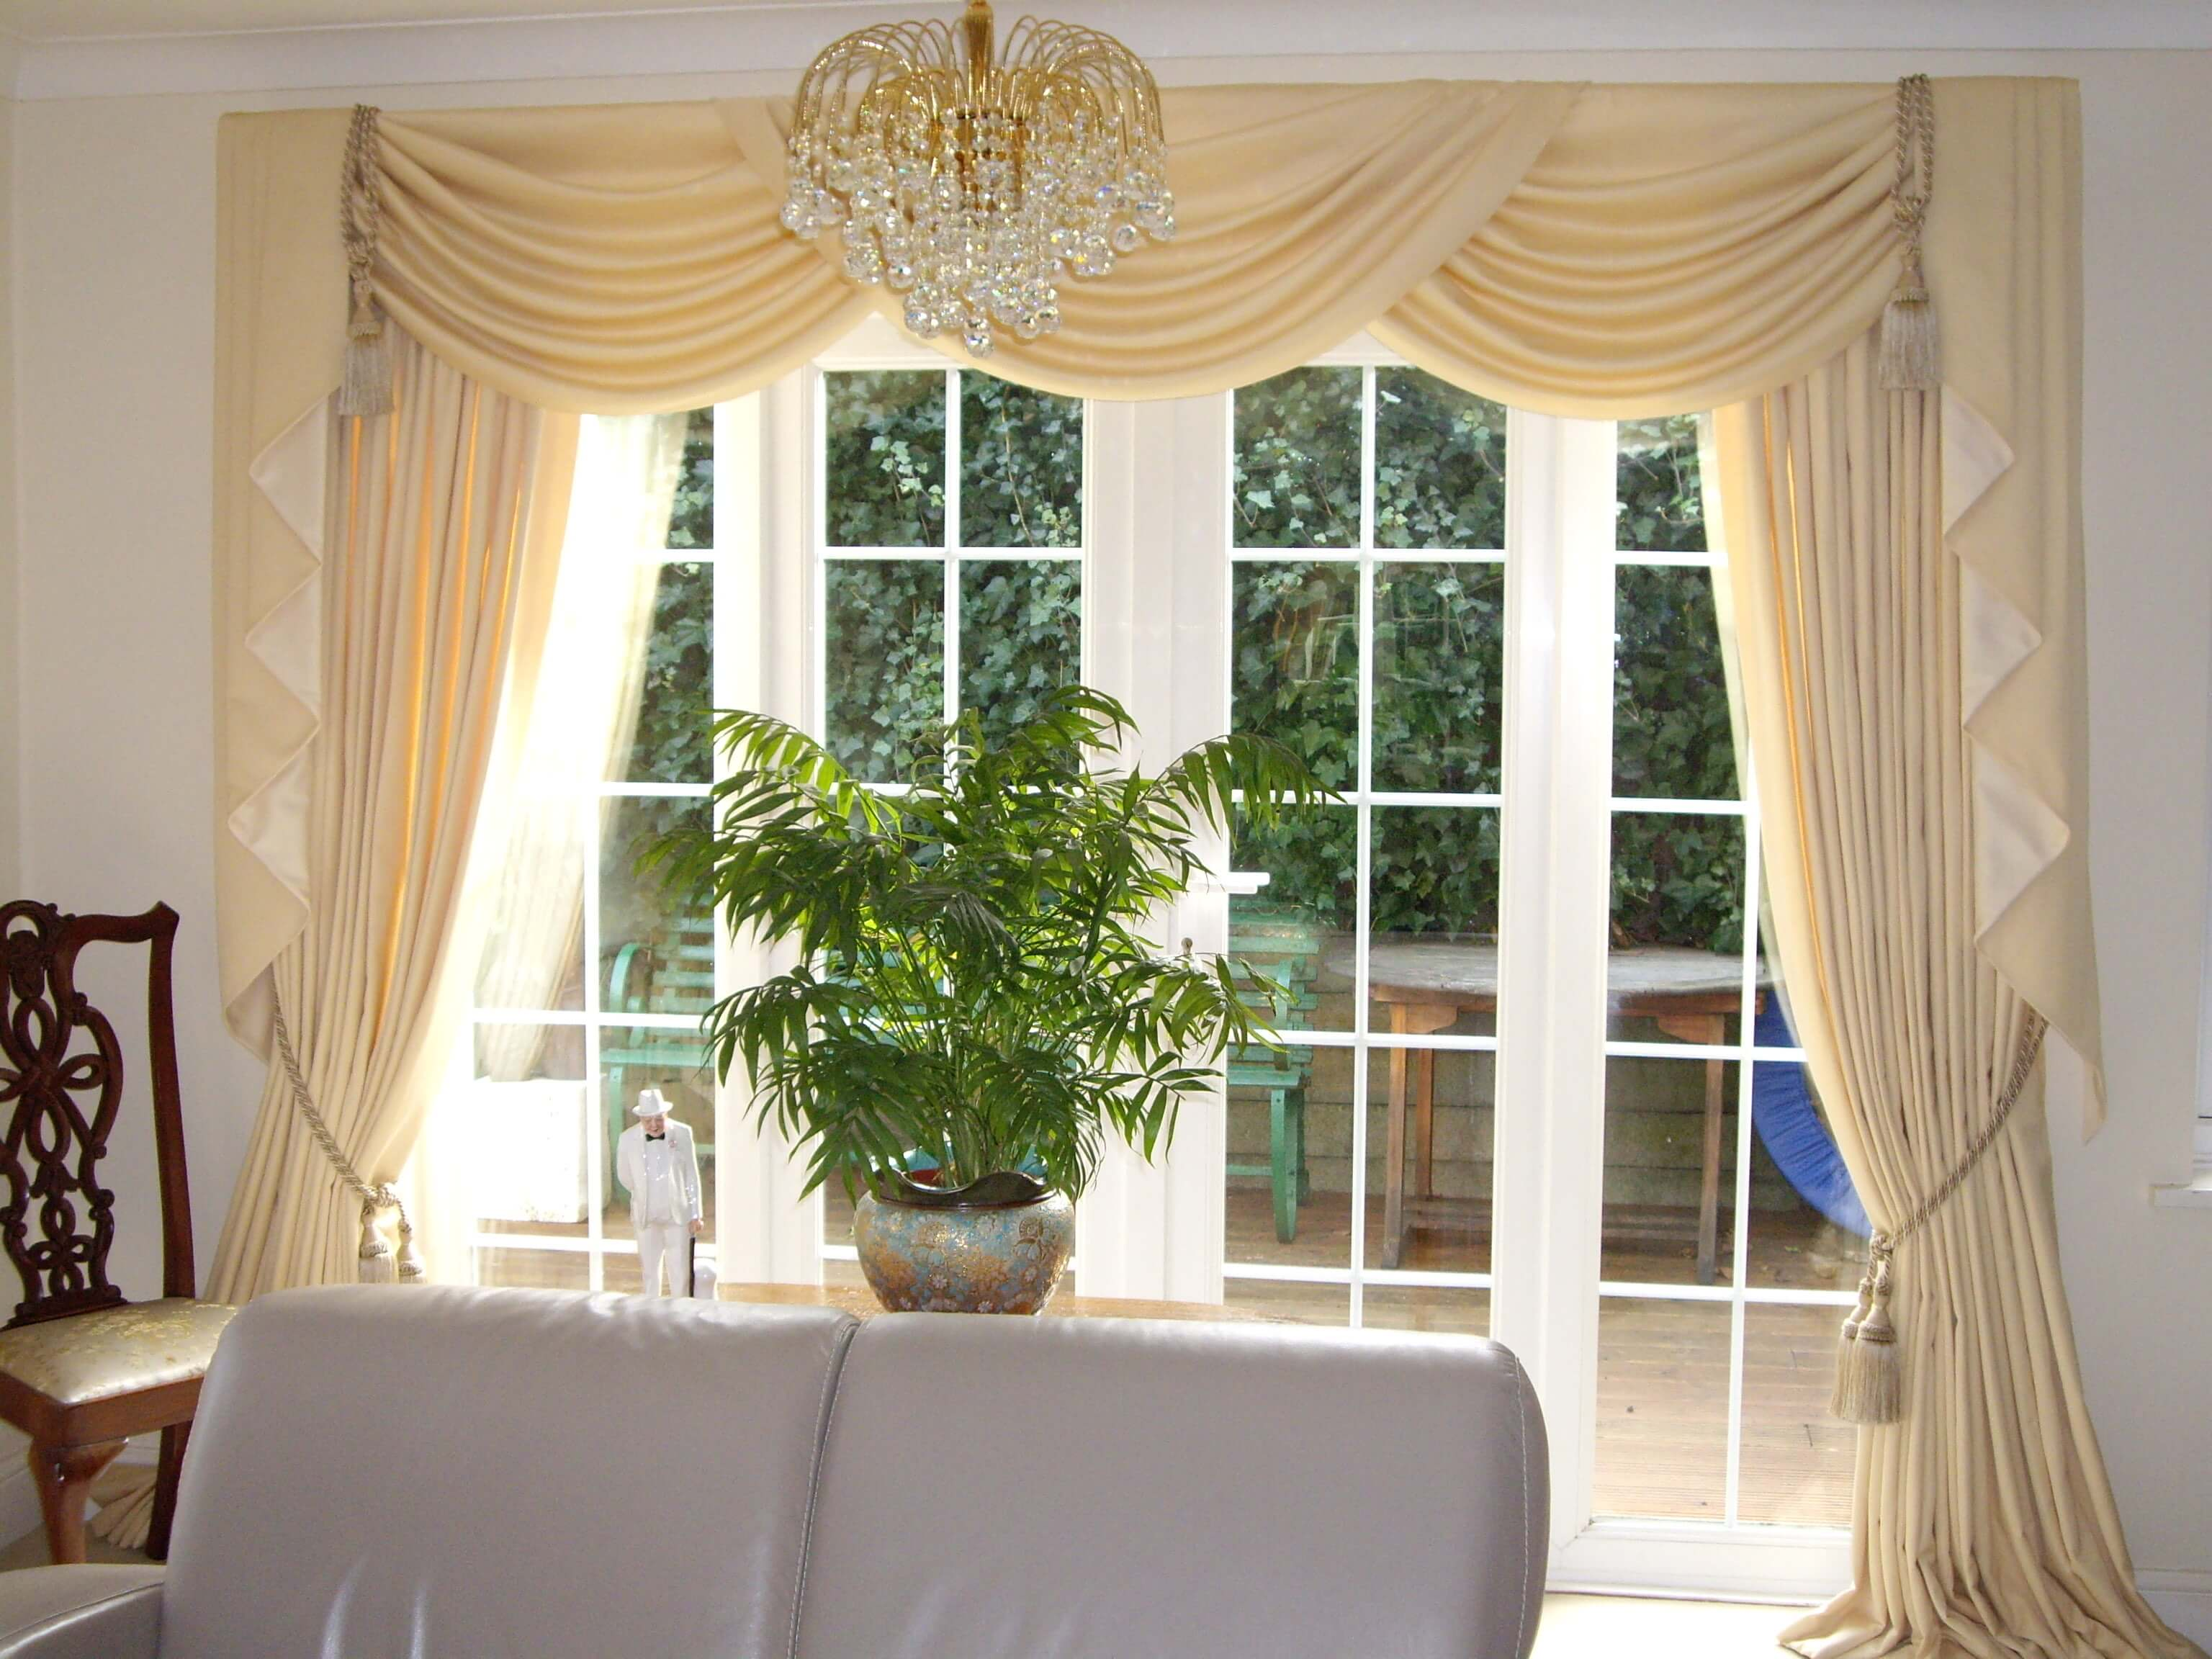 Cream curtains with swags and tiebacks